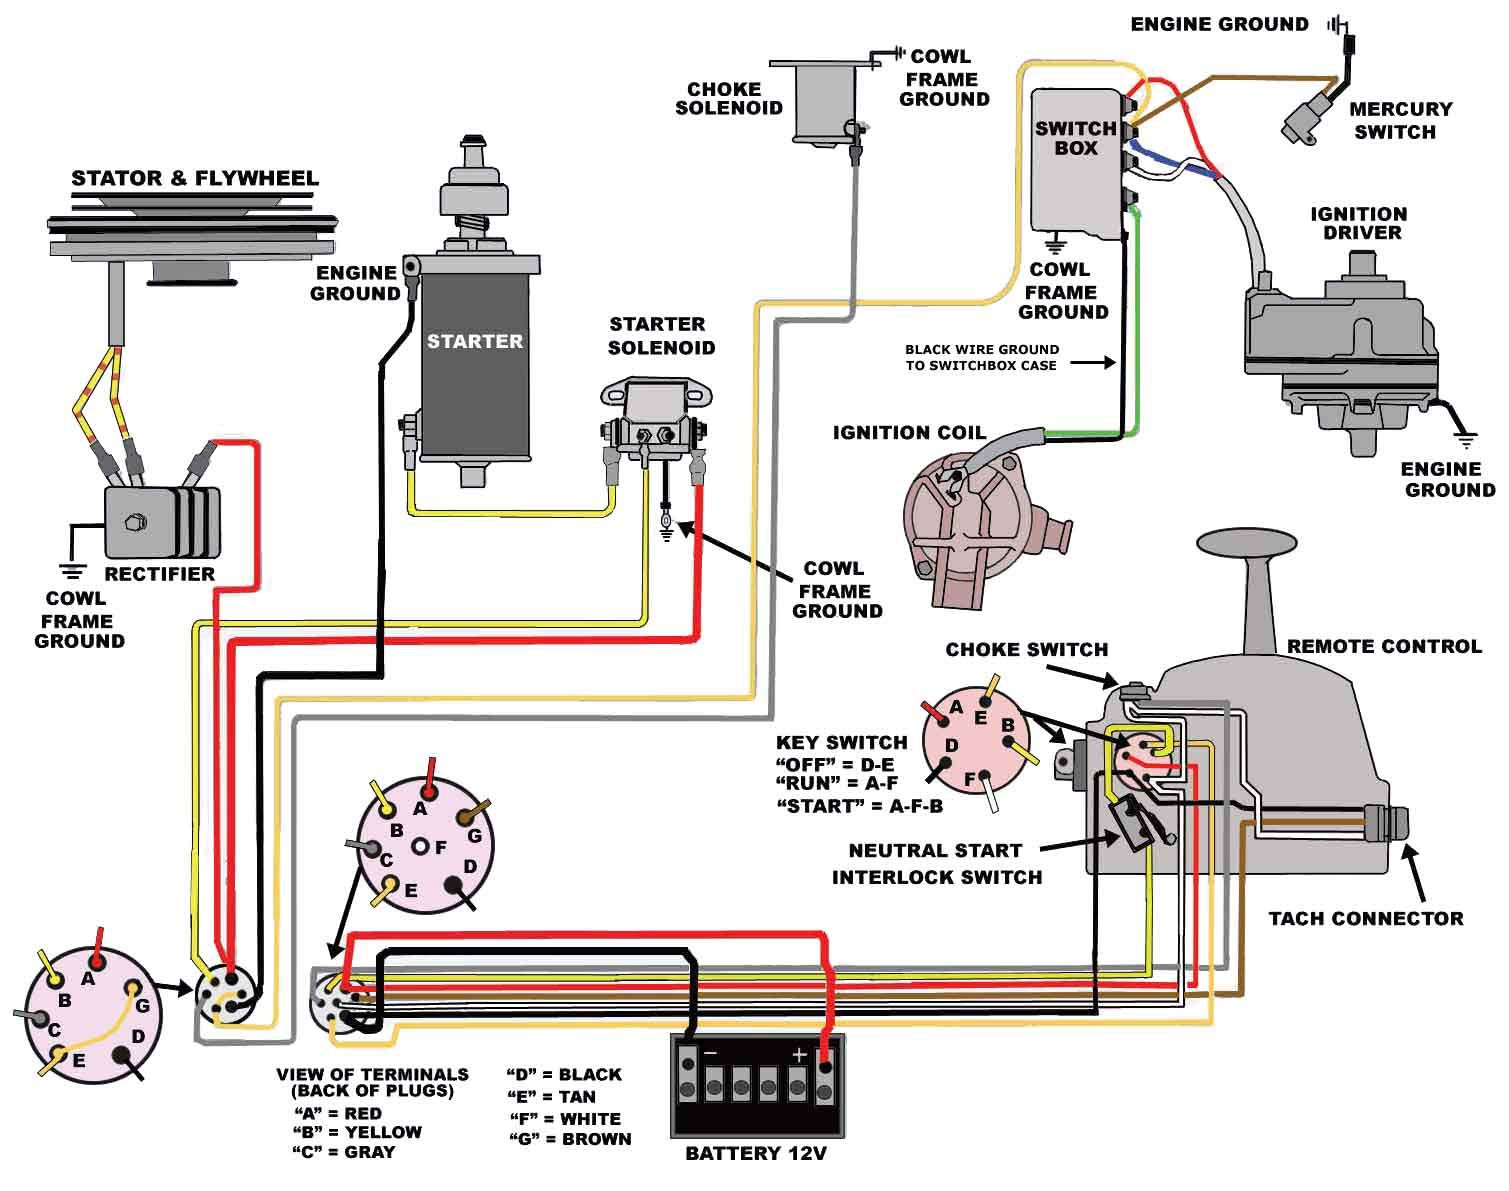 Mercury outboard wiring diagram diagram pinterest mercury kill switch 1974 mercury thunderbolt ignition page 1 iboats schematic cheapraybanclubmaster Images